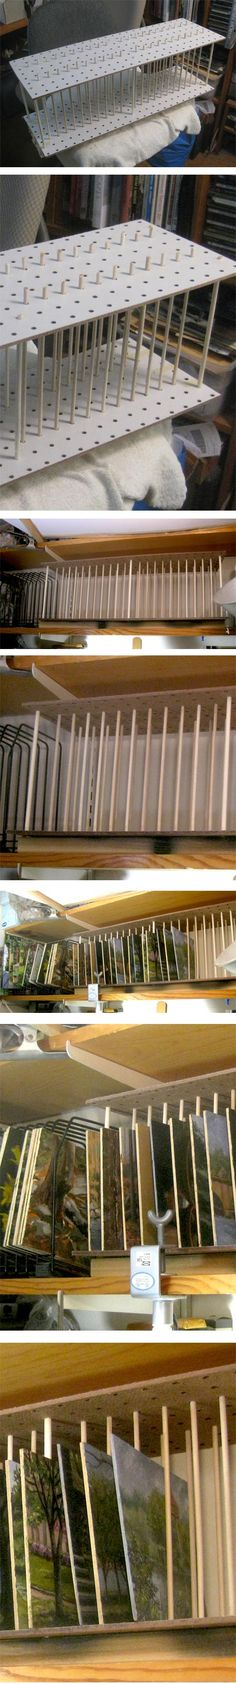 diy painting storage rack  http://linesandcolors.com/2014/03/15/a-simple-diy-drying-rack-for-plein-air-panels-and-small-paintings/